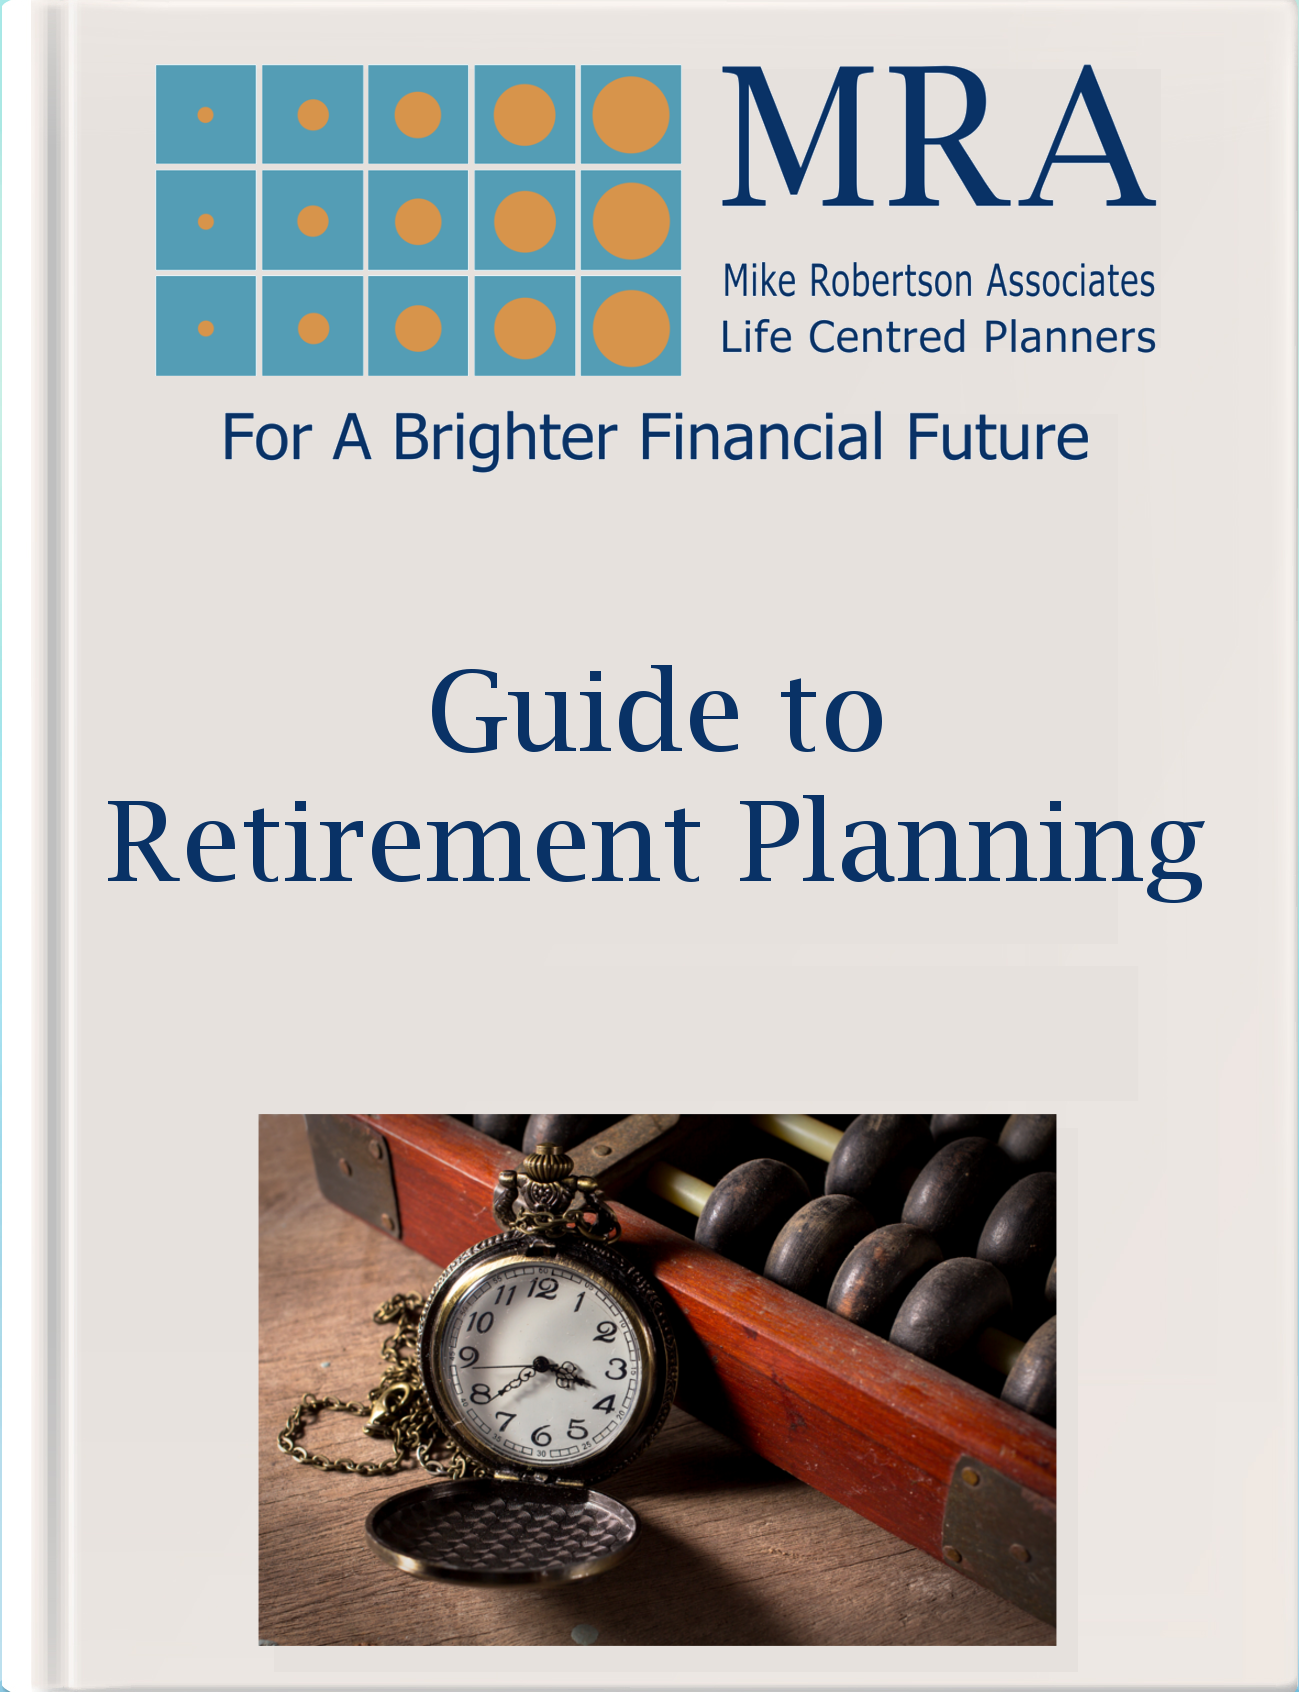 Download our Guide to Retirement Planning. Lifestyle Financial Planners, Lifestyle Financial Planning, Life Centred Financial Planning, Life Centred Financial Planners, Independent Financial Adviser, Independent Financial Advisor, IFA Local, Life Style Financial Consultant, Life Centred Financial Consultant, Personal Financial Planning, Financial Planning, Personal Financial Planning, Personal Finances, Financial Consultant, Pensions, Pensions Planner, Retirement Planning, Retirement Planner, Tax Planning, Tax Planning Consultant, Tax Planning Adviser, Tax Consultant, Tax Planning Advisor, Cash Flow Budgeting, Banking, Insurance, Term Assurance, Mortgage Consultant, Mortgage Adviser, Mortgage Advisor, Mortgages, Savings, Pesonal Savings, Investments, Estate Planning, Estate Planner, Later Life Planning, Wealth Management, Business Adviser, Business Consultant, Forecasting, Investments, Portfolio Planning, Financial Guidance, Financial Security, Family Protection, Critical Illness, Critical Illness Planning, Critical Illness Protection, Tax Efficient Savings, Tax Planning, Tax Efficient Investments, Saving For Long Term Goals, Savings For Long Term Care, Life Centred Financial Advice, Life Centred Adviser, Life Centred Advisor, Life Centered Planning, Life Centered Adviser, Cash Flow Forecasting, Residence Nil Rate Band, Land Registry, Tracing Land Registry Form, Financial Planning, Financial Planners, Work To Live Financial Planning, What is Inflation, How to beat Inflation, Selling a property in a limited company, SSAS Pensions, SSAS Pension, What is a SSAS, What is a SIPP, SIPP Planning, SSAS Planner, SIPP Planner, SSAS Planning, Stakeholder Pansions, Financial Freedom Reviews, When Can I Draw My State Pension, Saving Money, Ways To Save Money, Ways To Save money on a Tight Budget, Land Registry, What is An Annuity, Annuities, Lower My Bills, Nil Rate Band, Inheritance Tax Advice, Essential Corporate Solutions, Inheritance Tax Residence Nil Rate Band, Debt Relief 